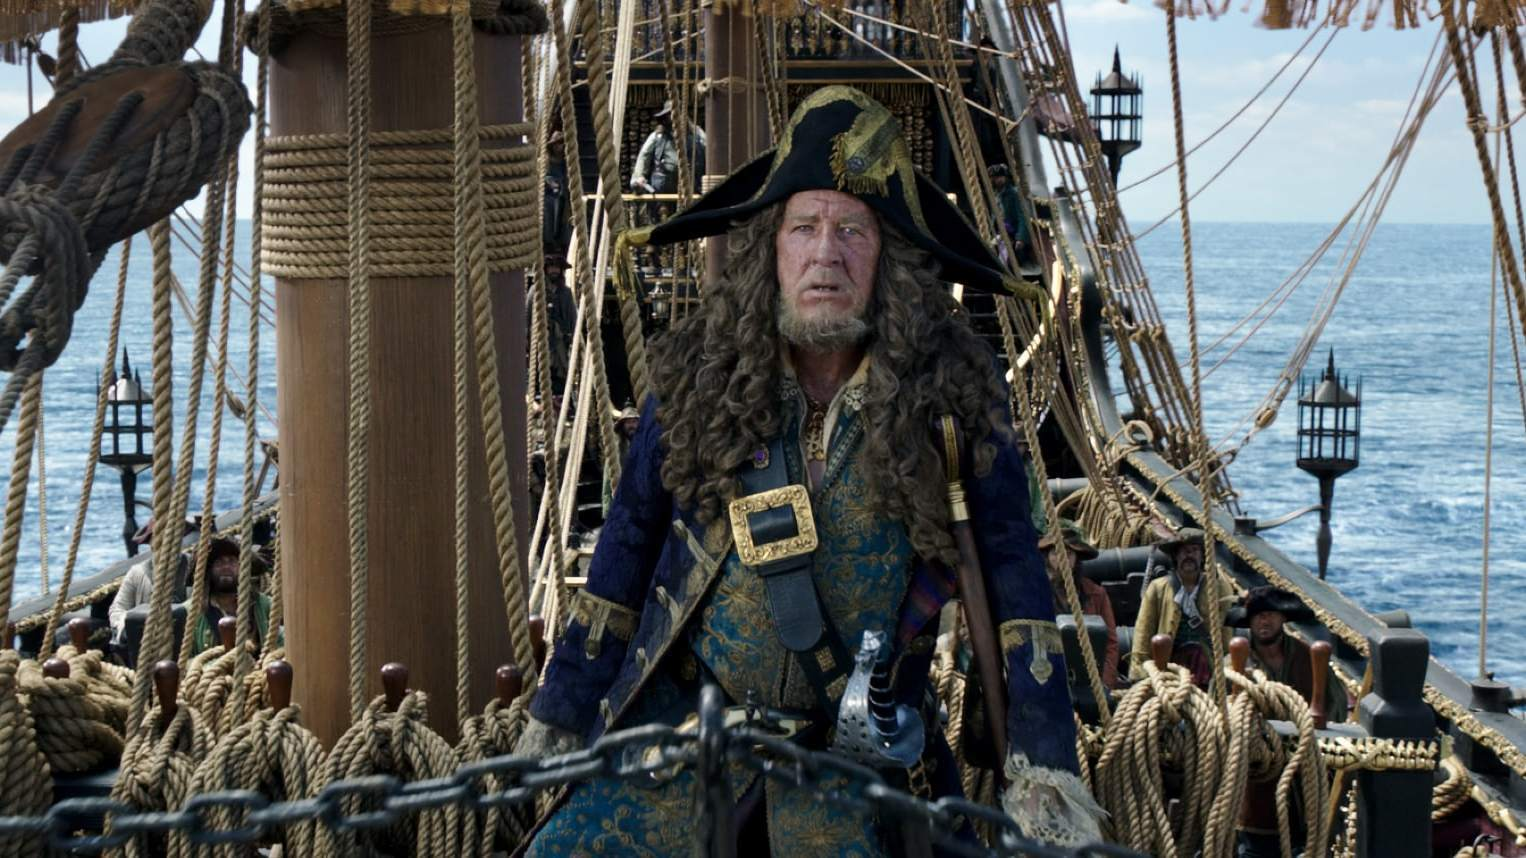 Captain Hector Barbossa, played by Geoffrey Rush, on a shop in a the middle of the ocean in the movie Pirates of the Caribbean: Dead Men Tell No Tales